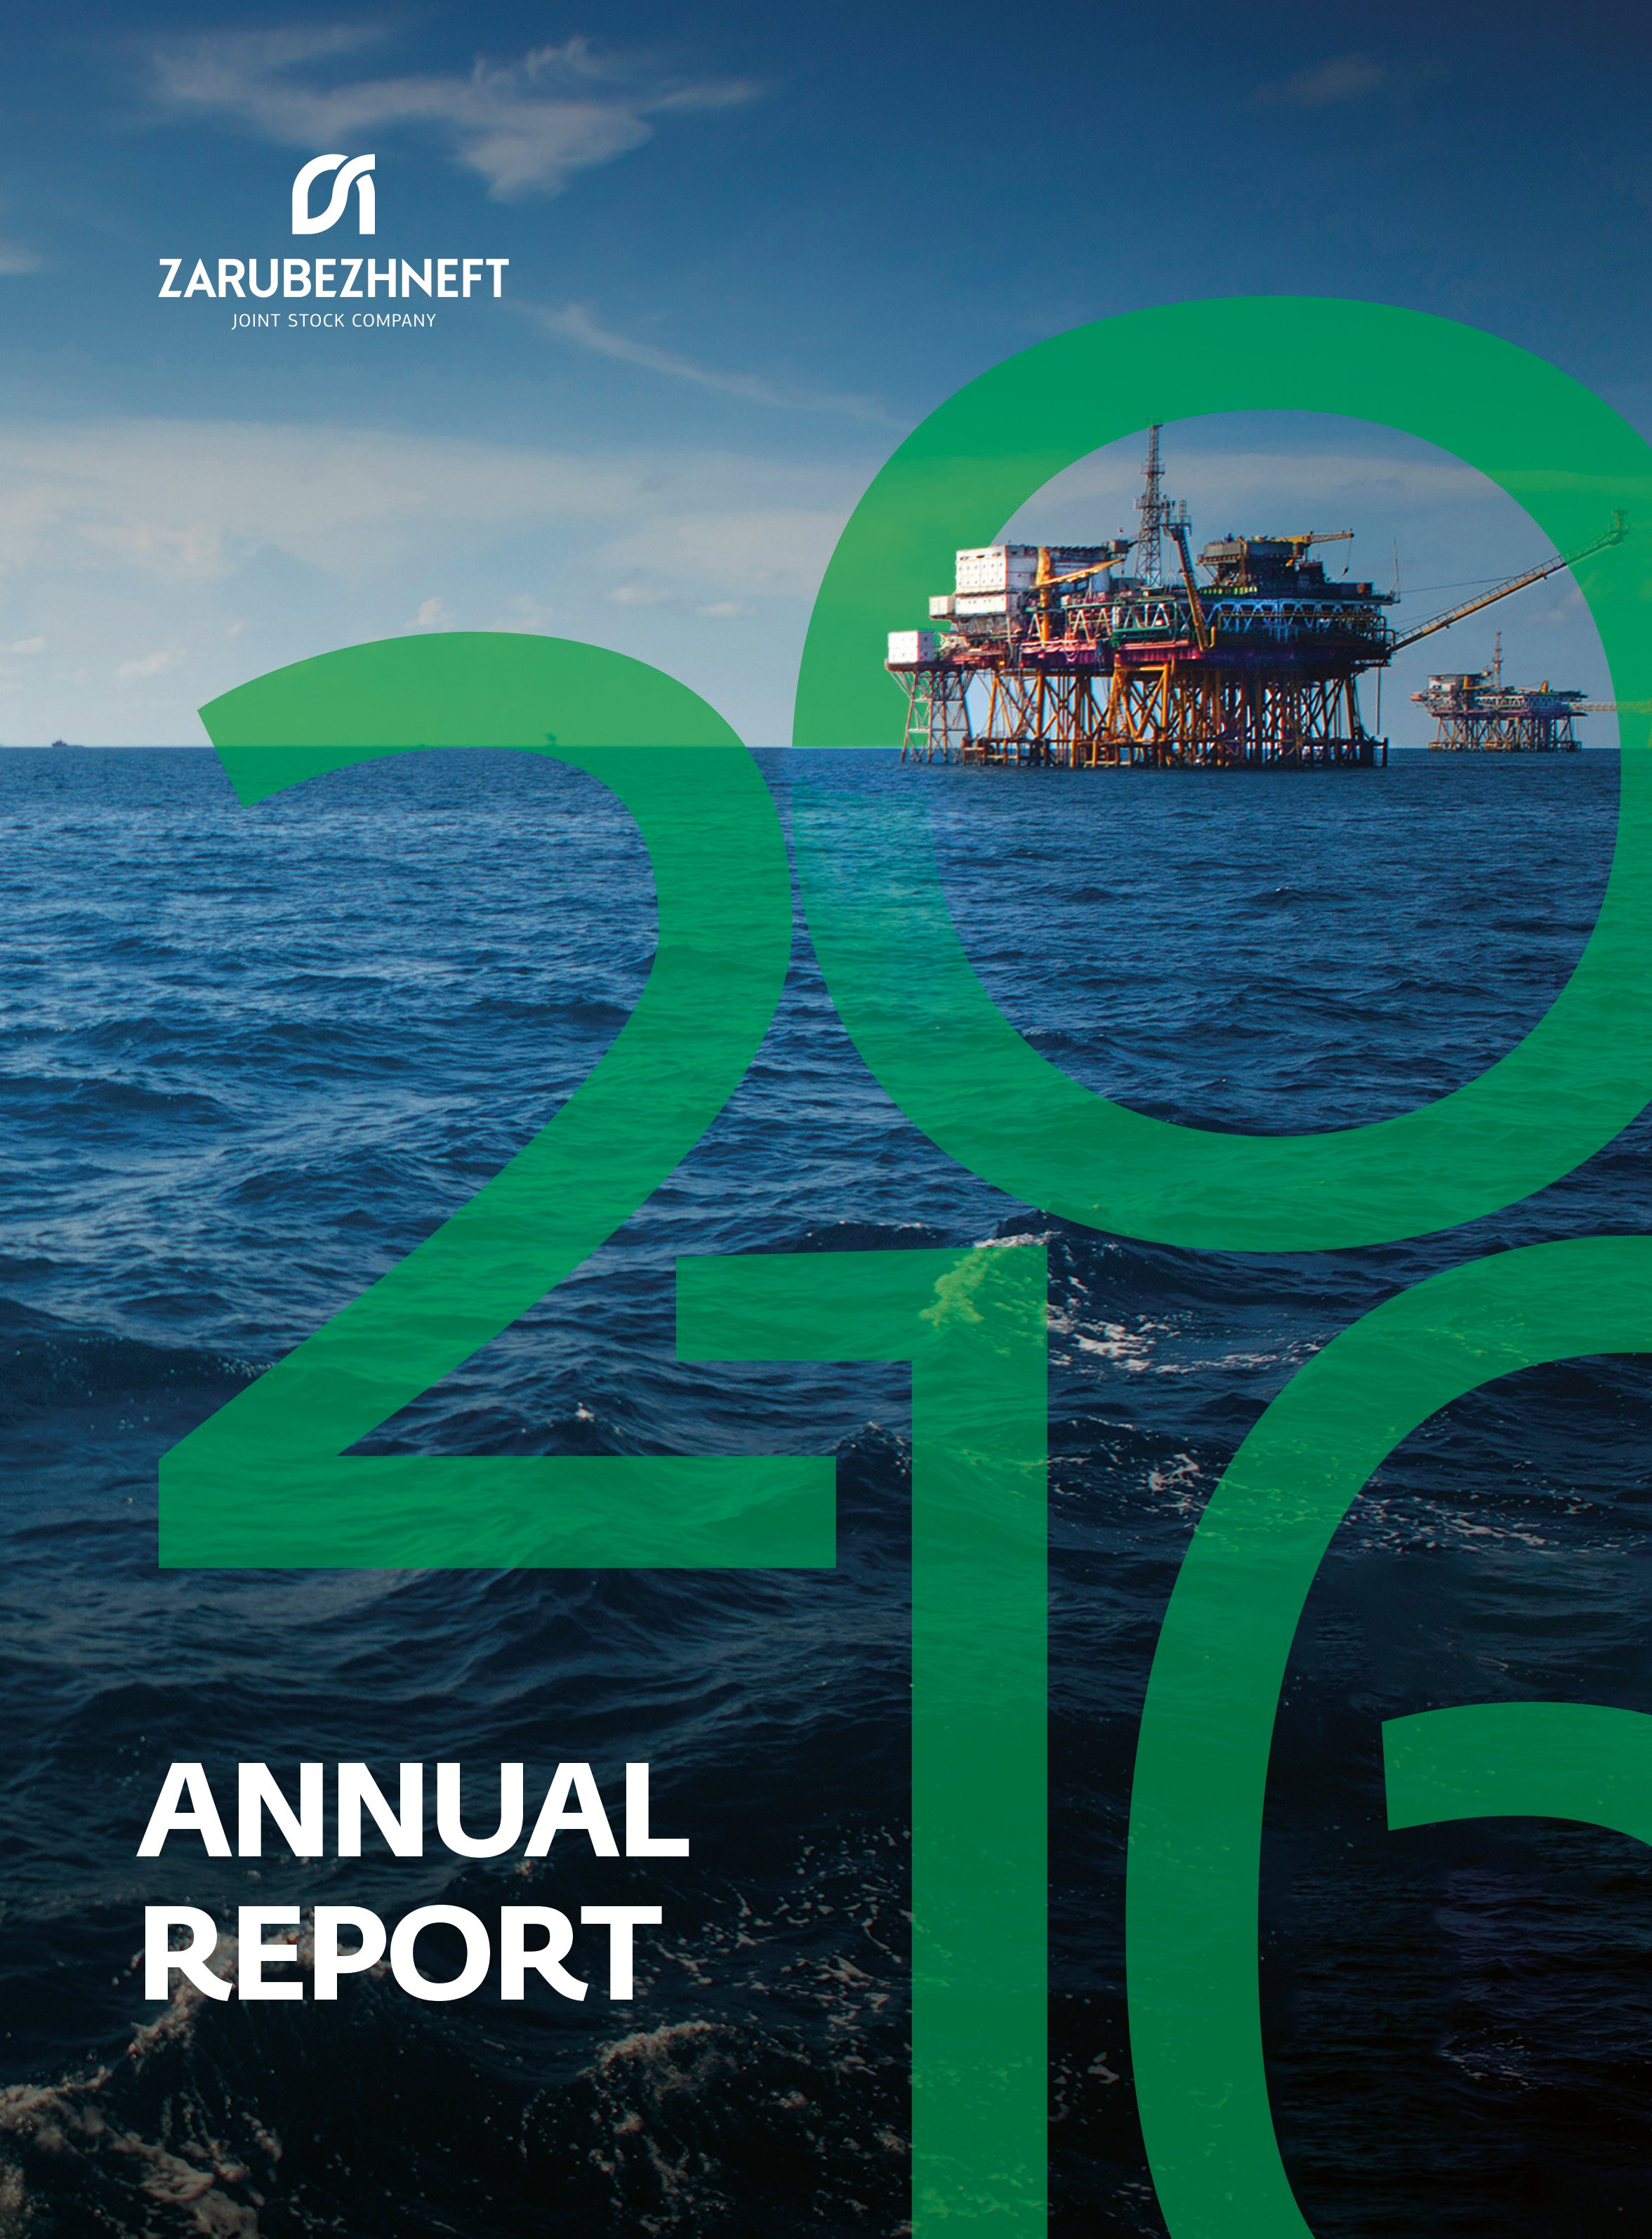 >Annual report for 2016